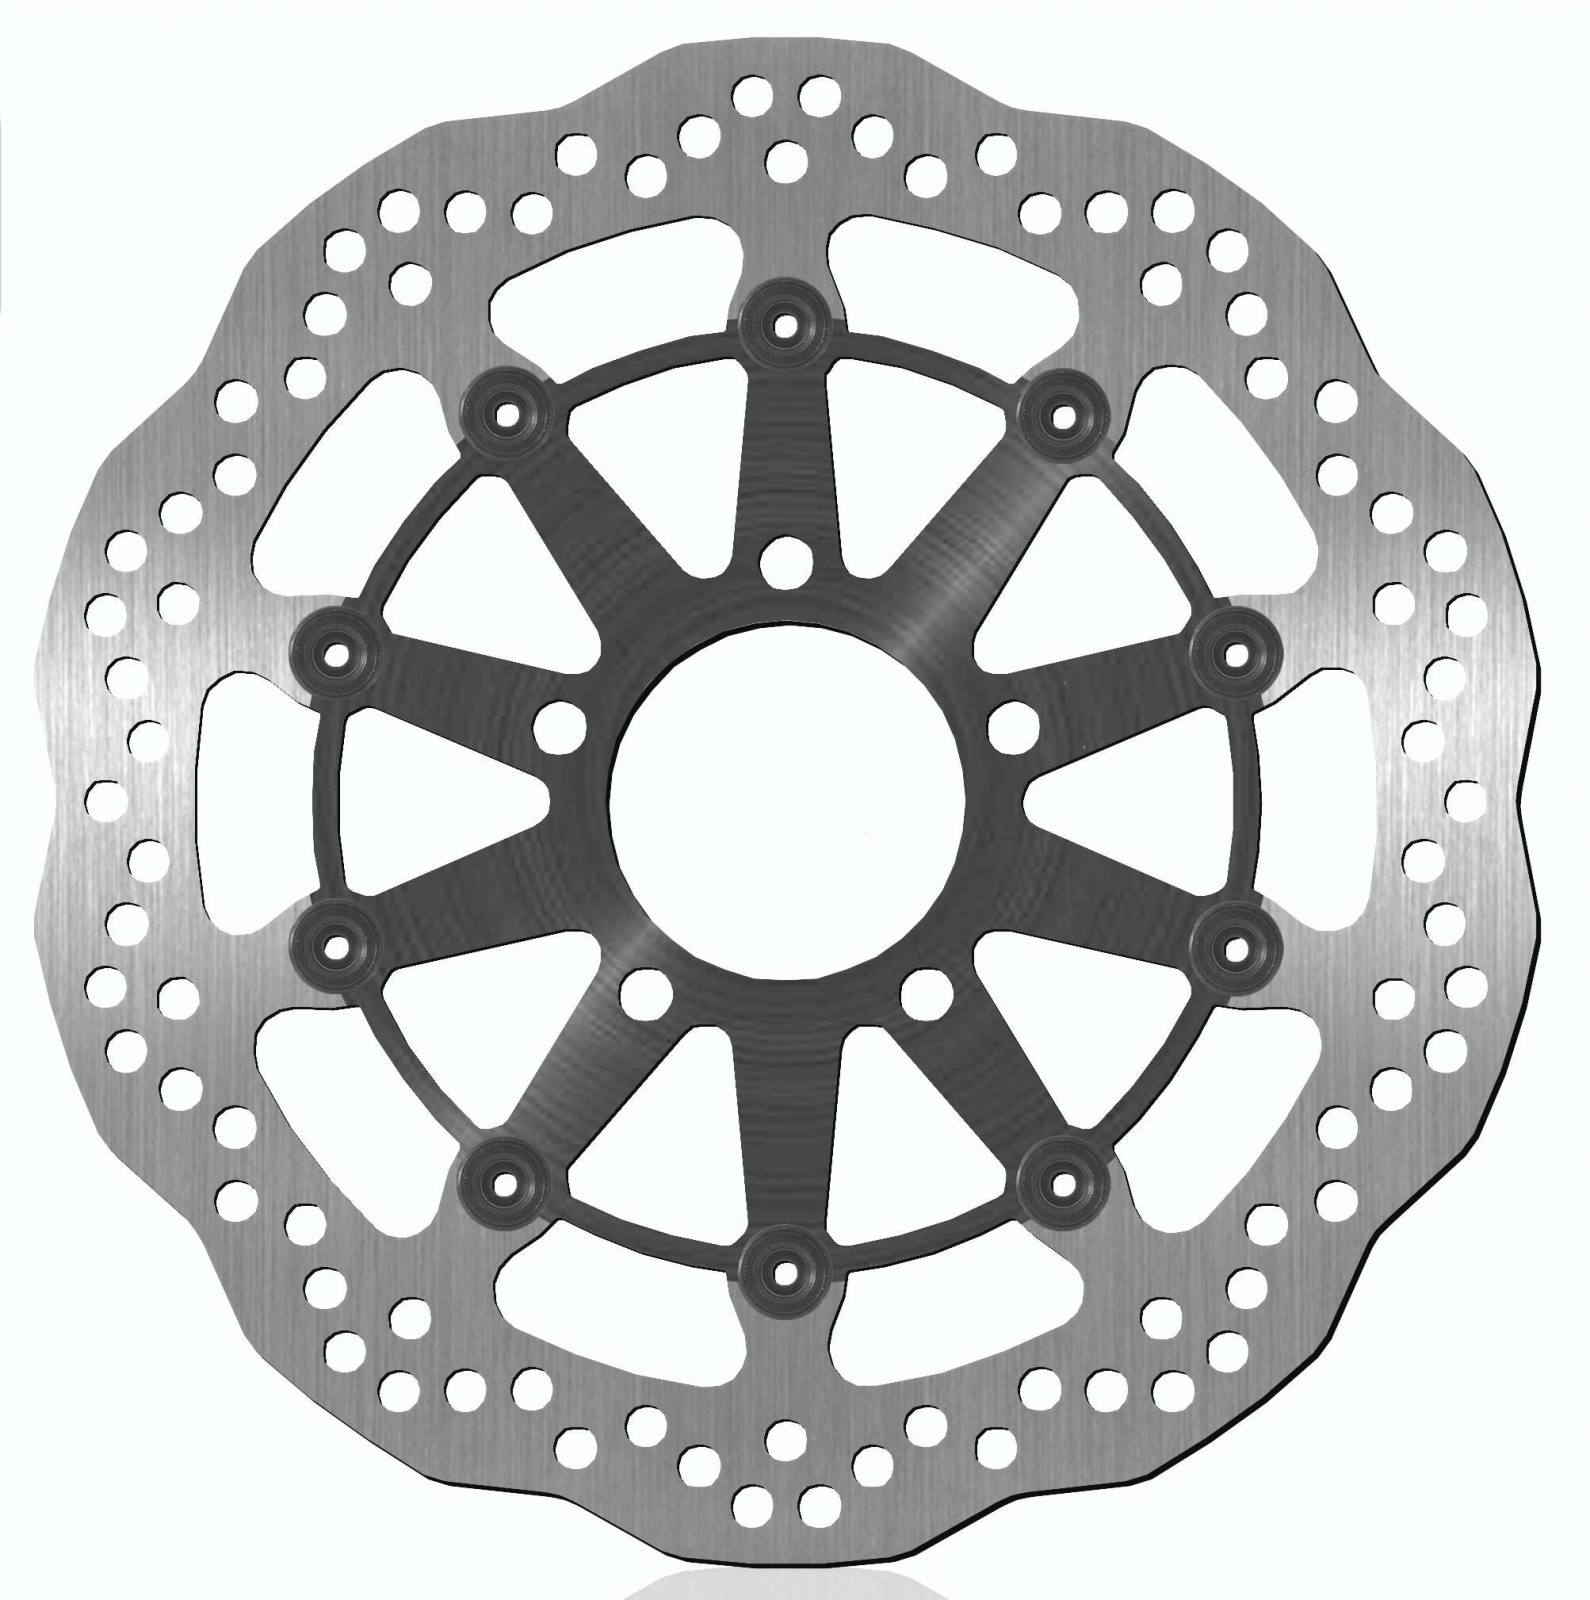 contour brake rotors for sale in grand junction co motorcycle 1983 Yamaha Venture contour brake rotors for sale in grand junction co motorcycle accessories 970 242 9495